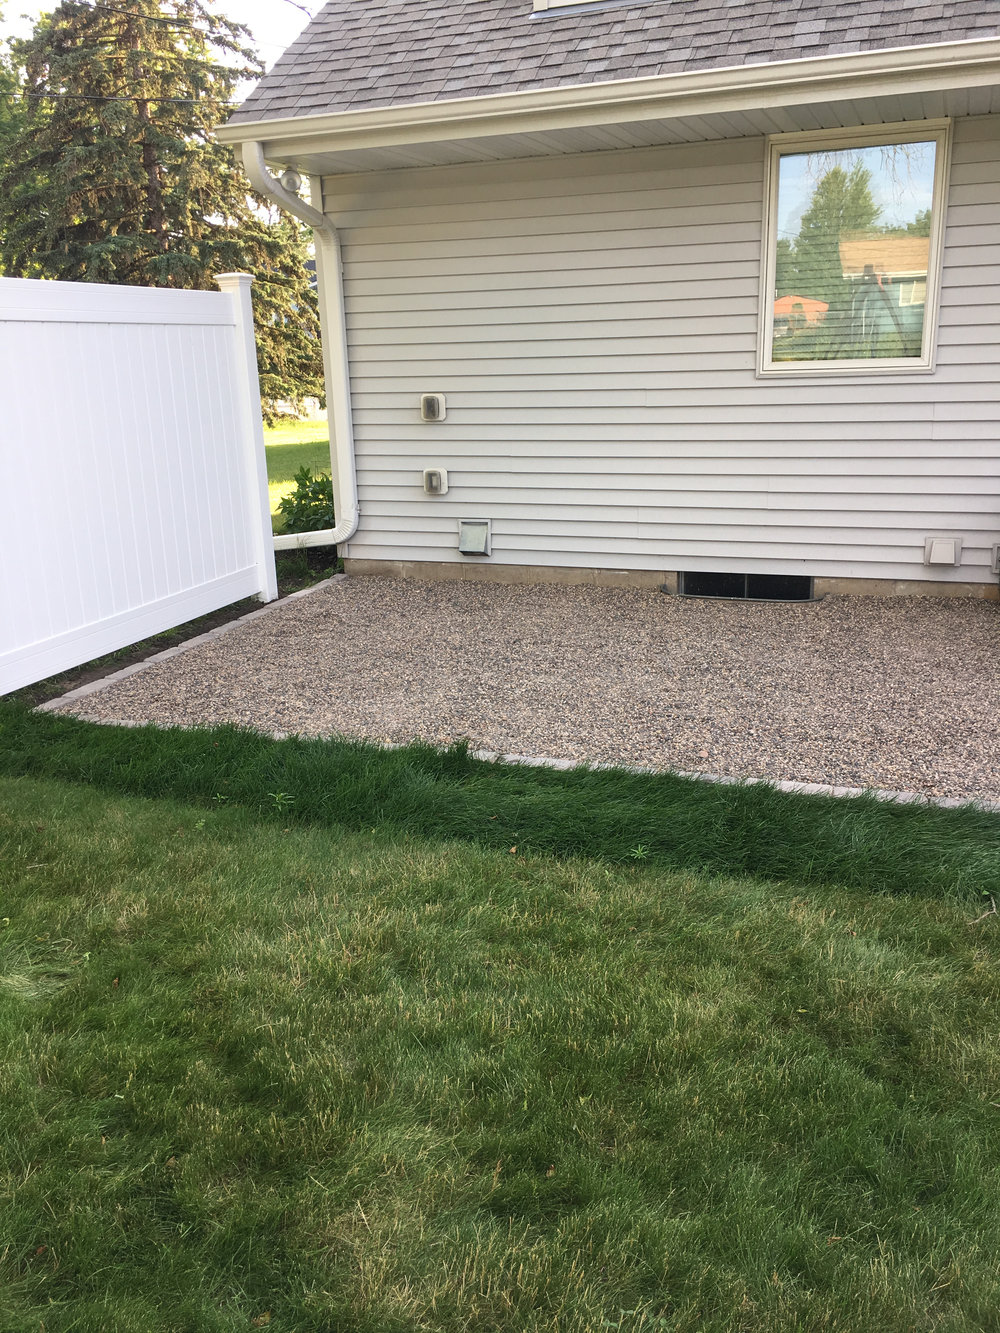 Completed DIY Pea Gravel Patio